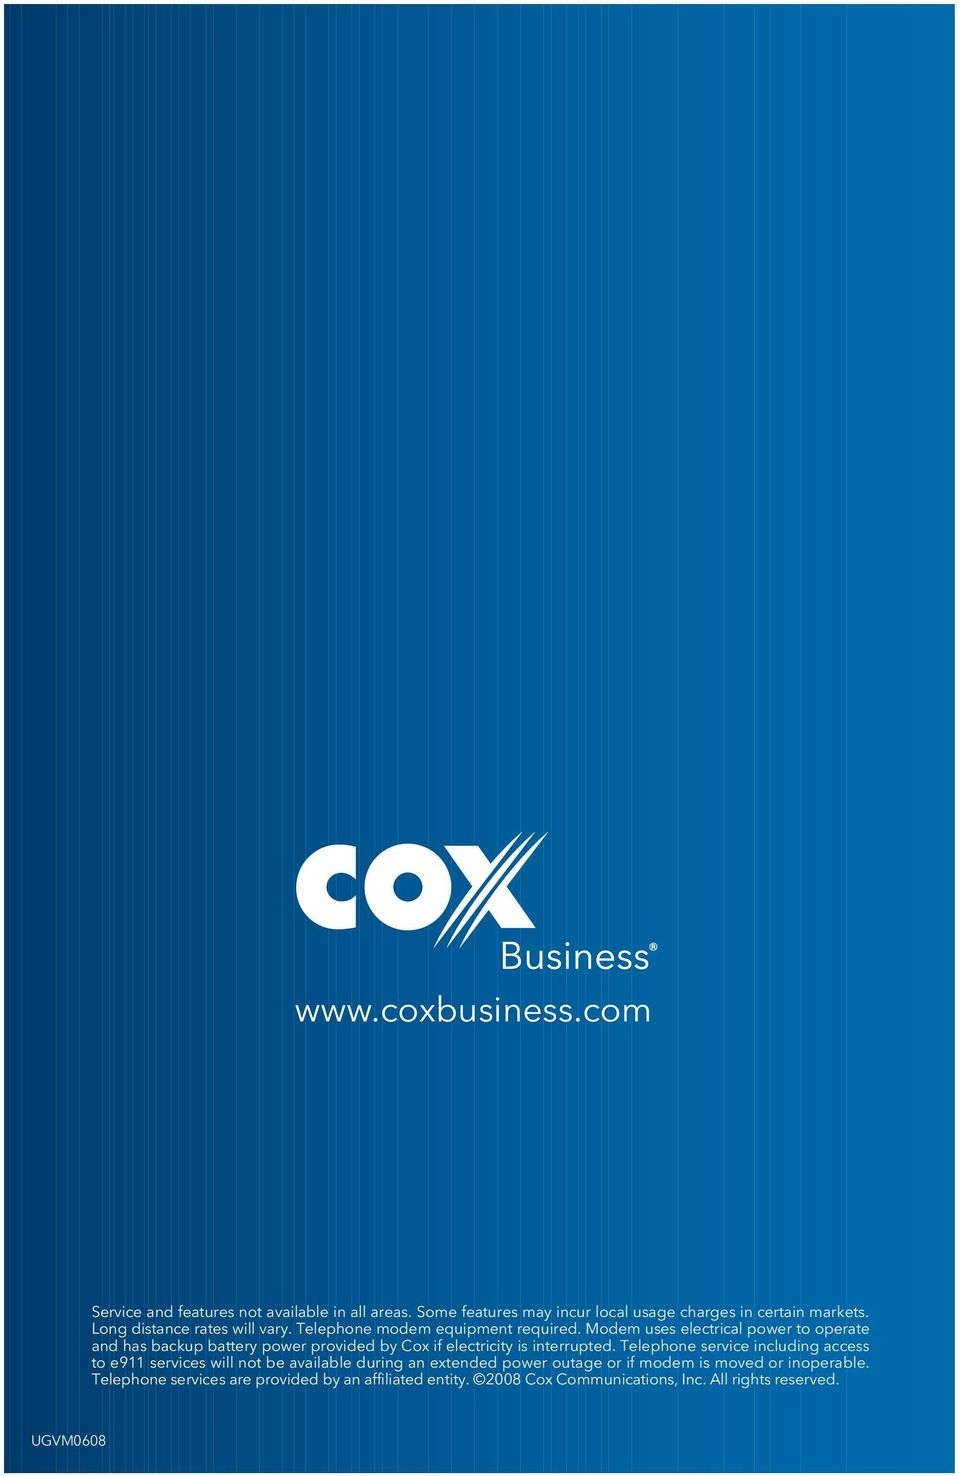 Modem uses electrical power to operate and has backup battery power provided by Cox if electricity is interrupted.